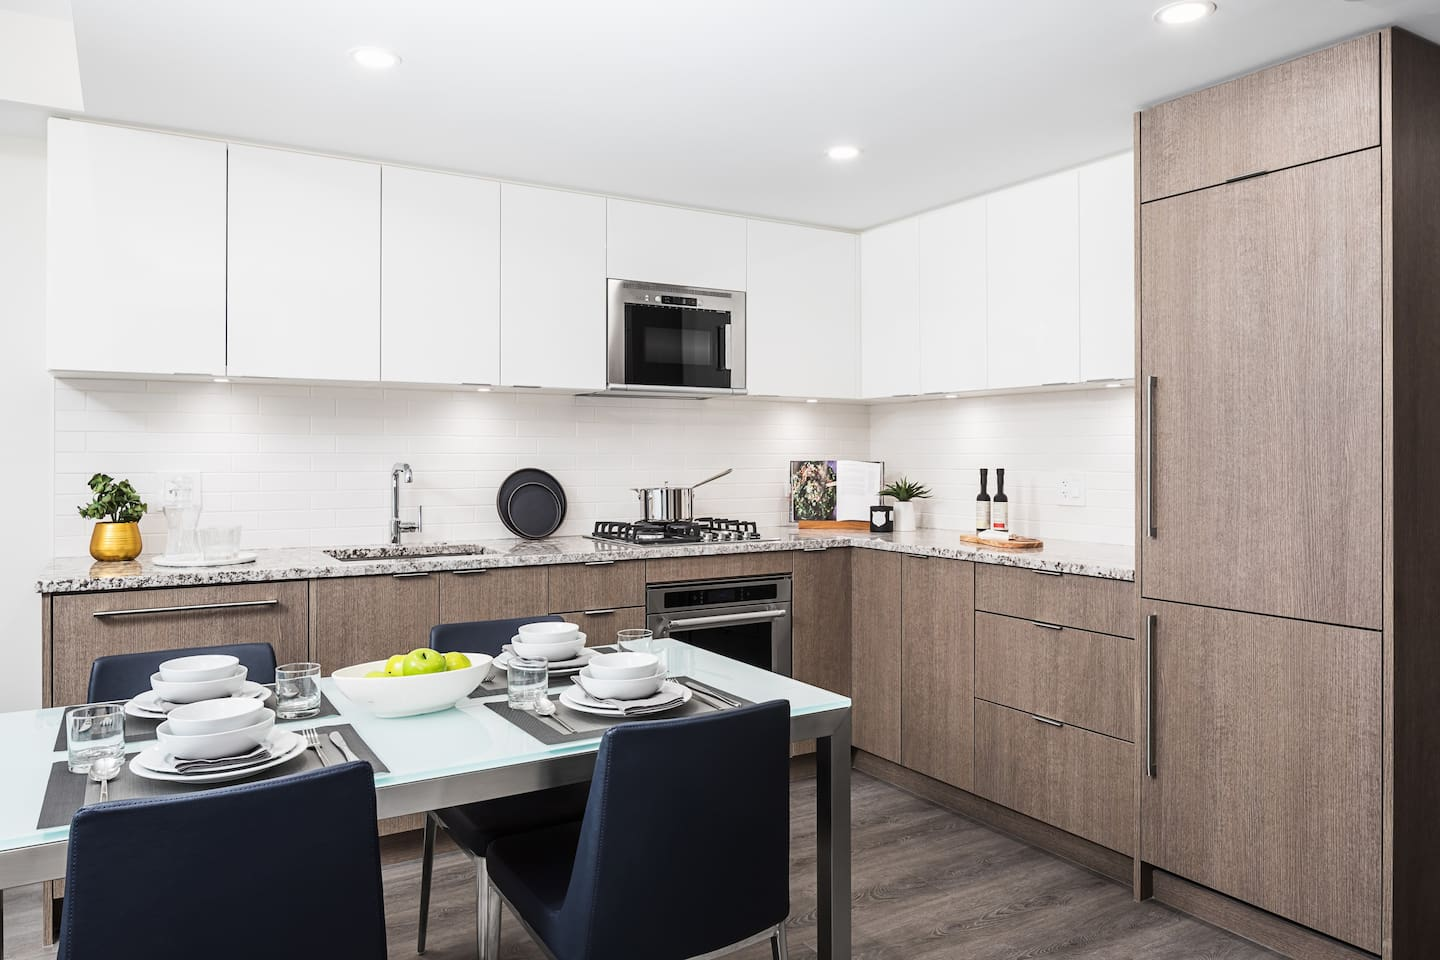 Stop living out of a suitcase and settle into life at LEVEL. Our furnished one bedroom in the heart of Vancouver are great for the business traveler, a couple on vacation, or the newly single bachelor/bachelorette.